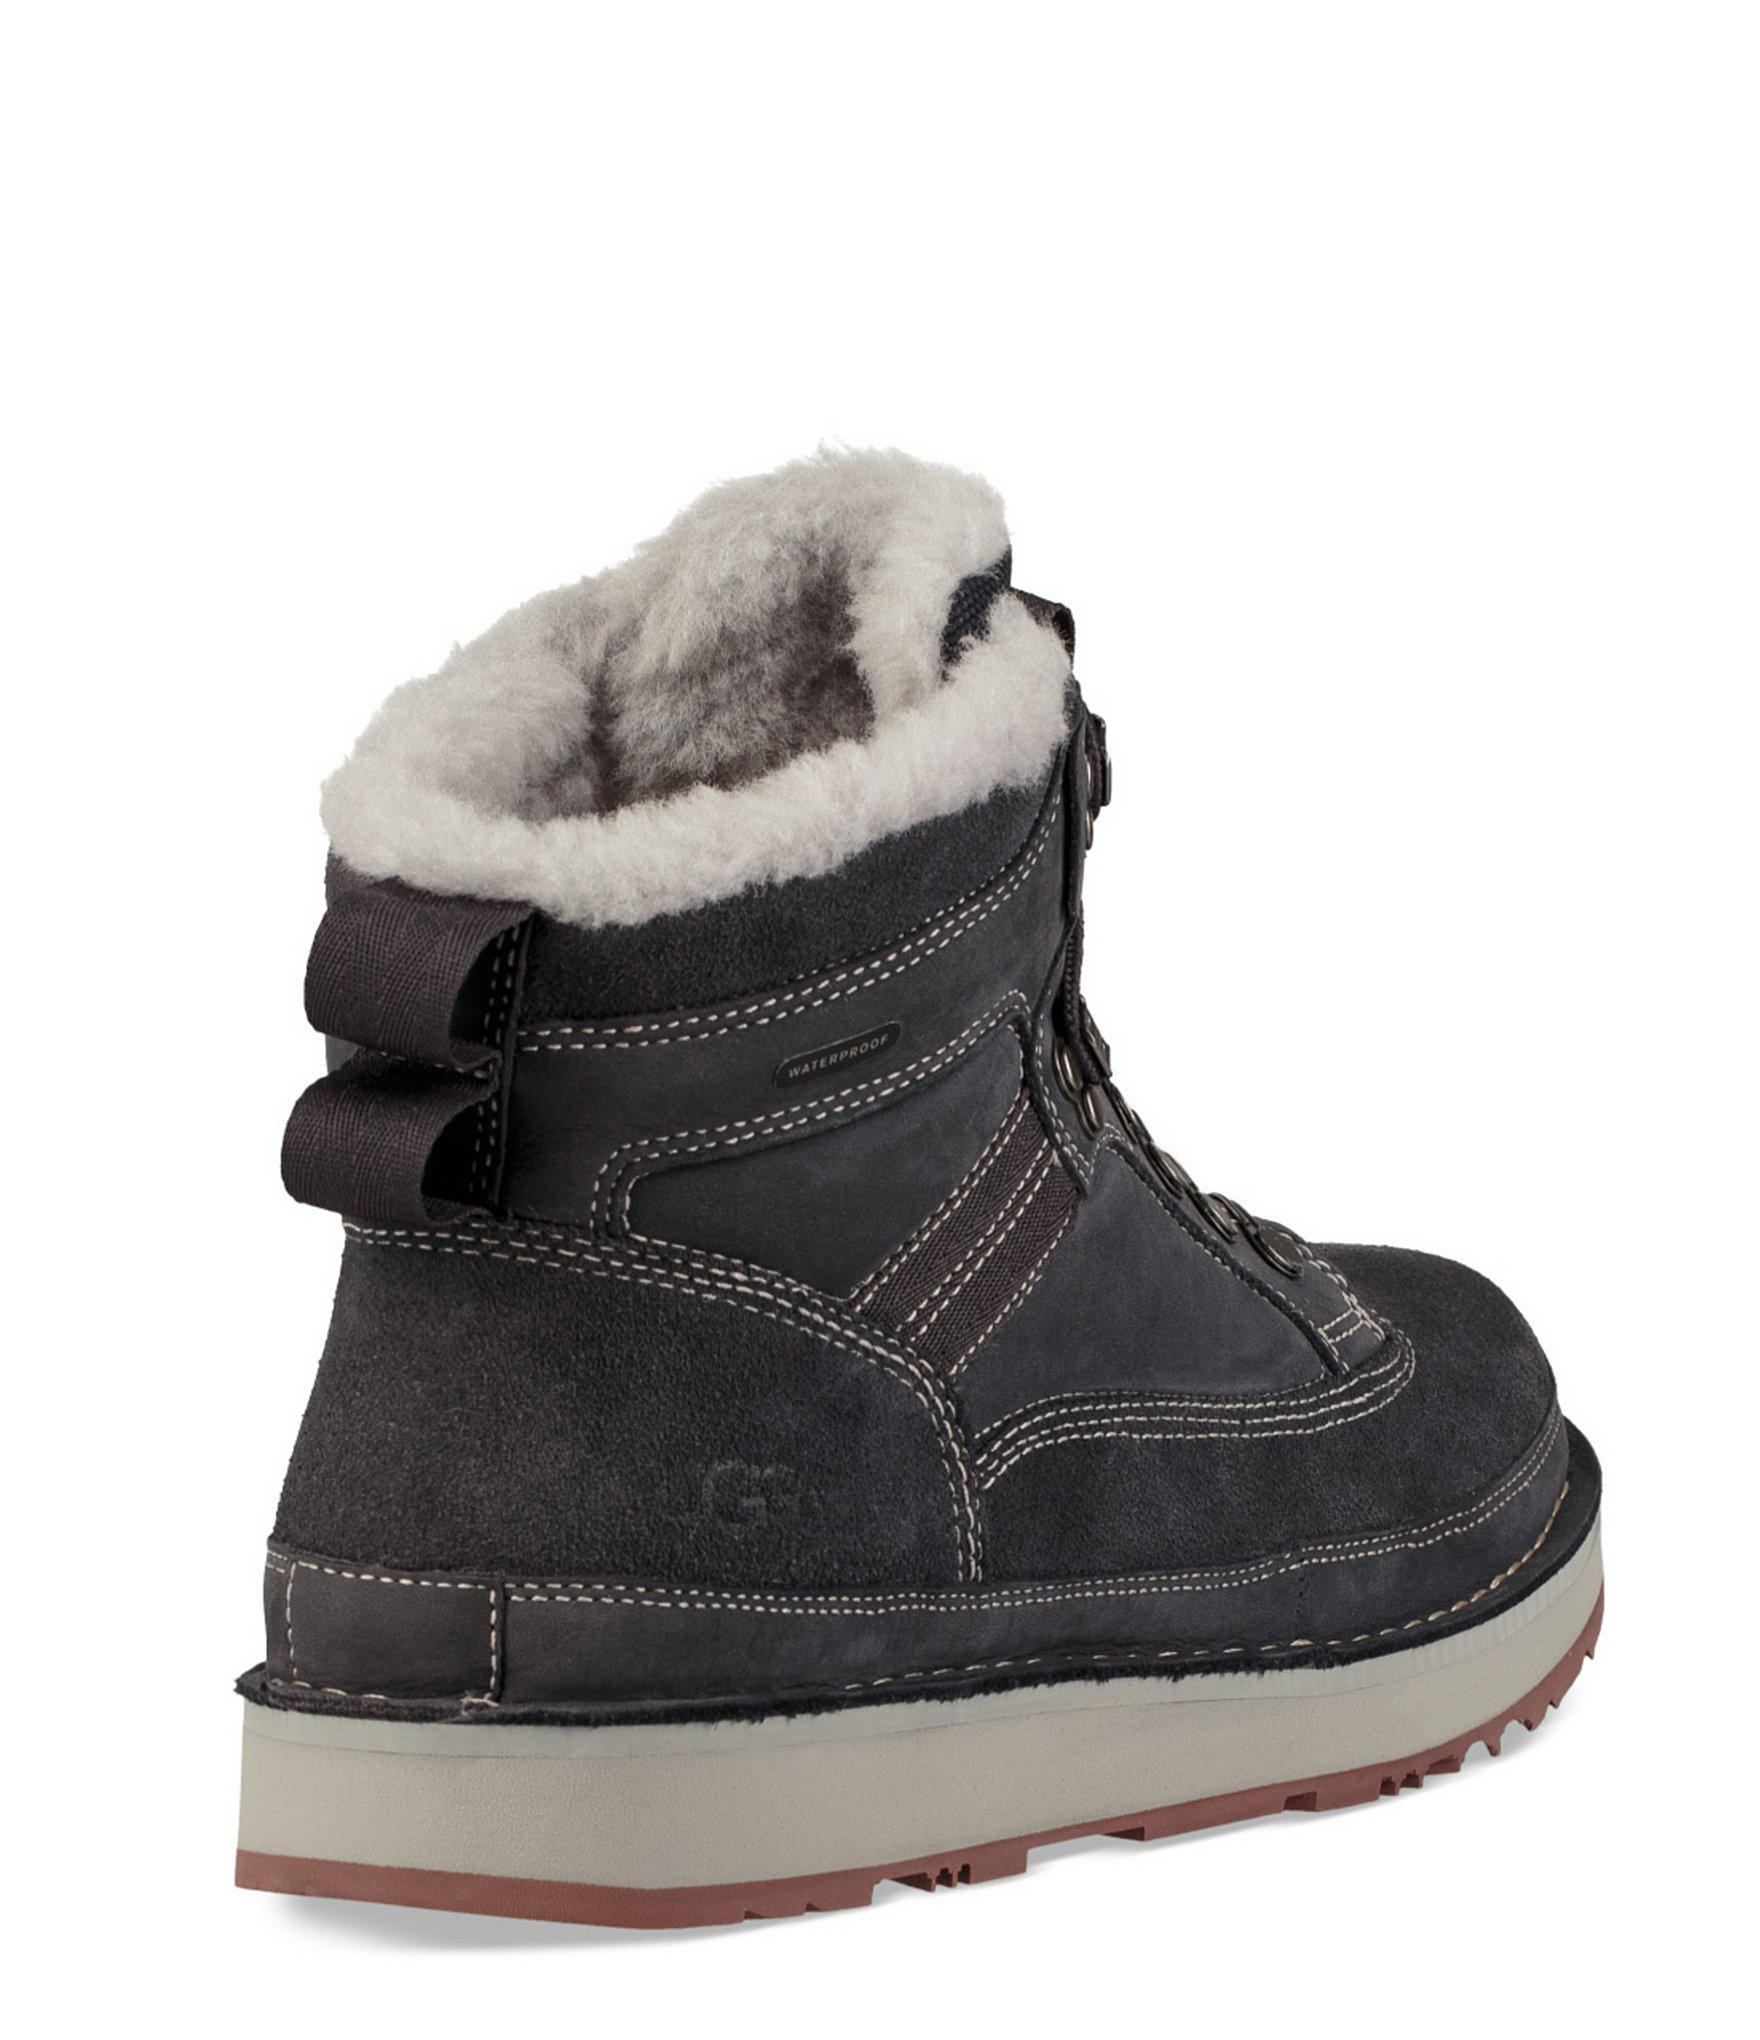 8e18bd5cc3a Ugg Multicolor Men's Avalanche Waterproof Nubuck And Suede Hiker Boot for  men